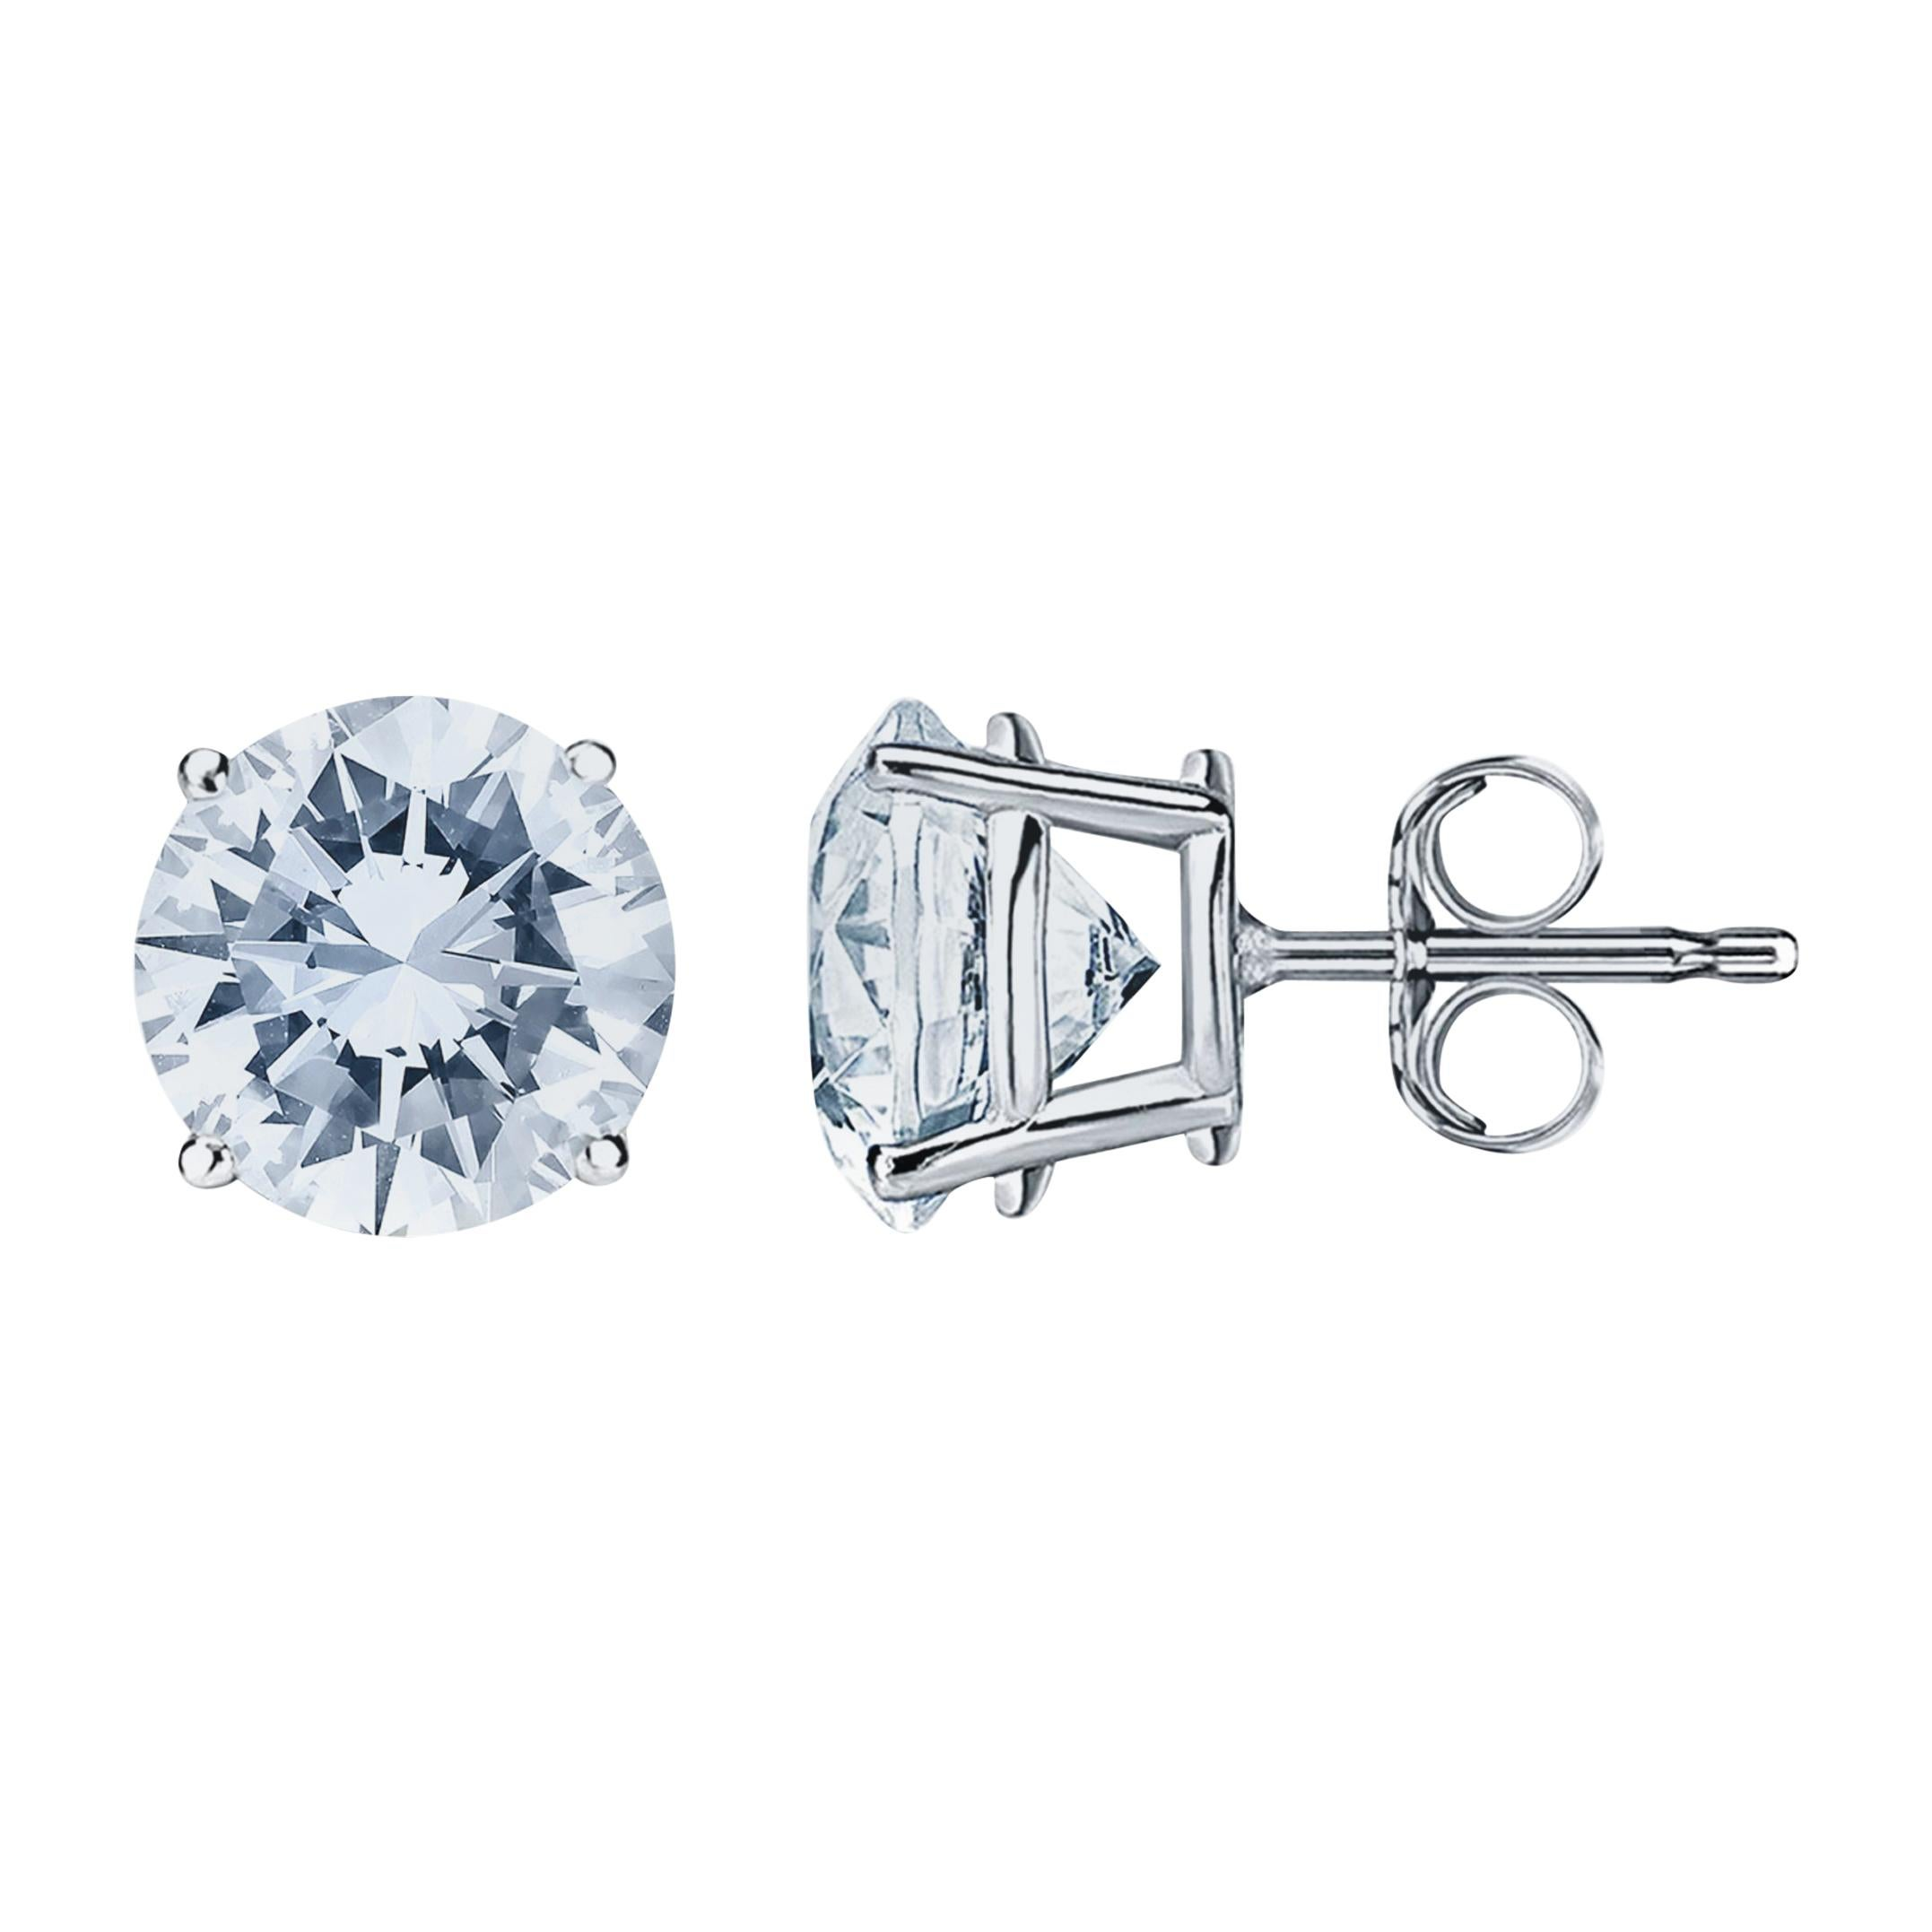 a656945f3 Diamond, Antique and Vintage Earrings - 21,373 For Sale at 1stdibs